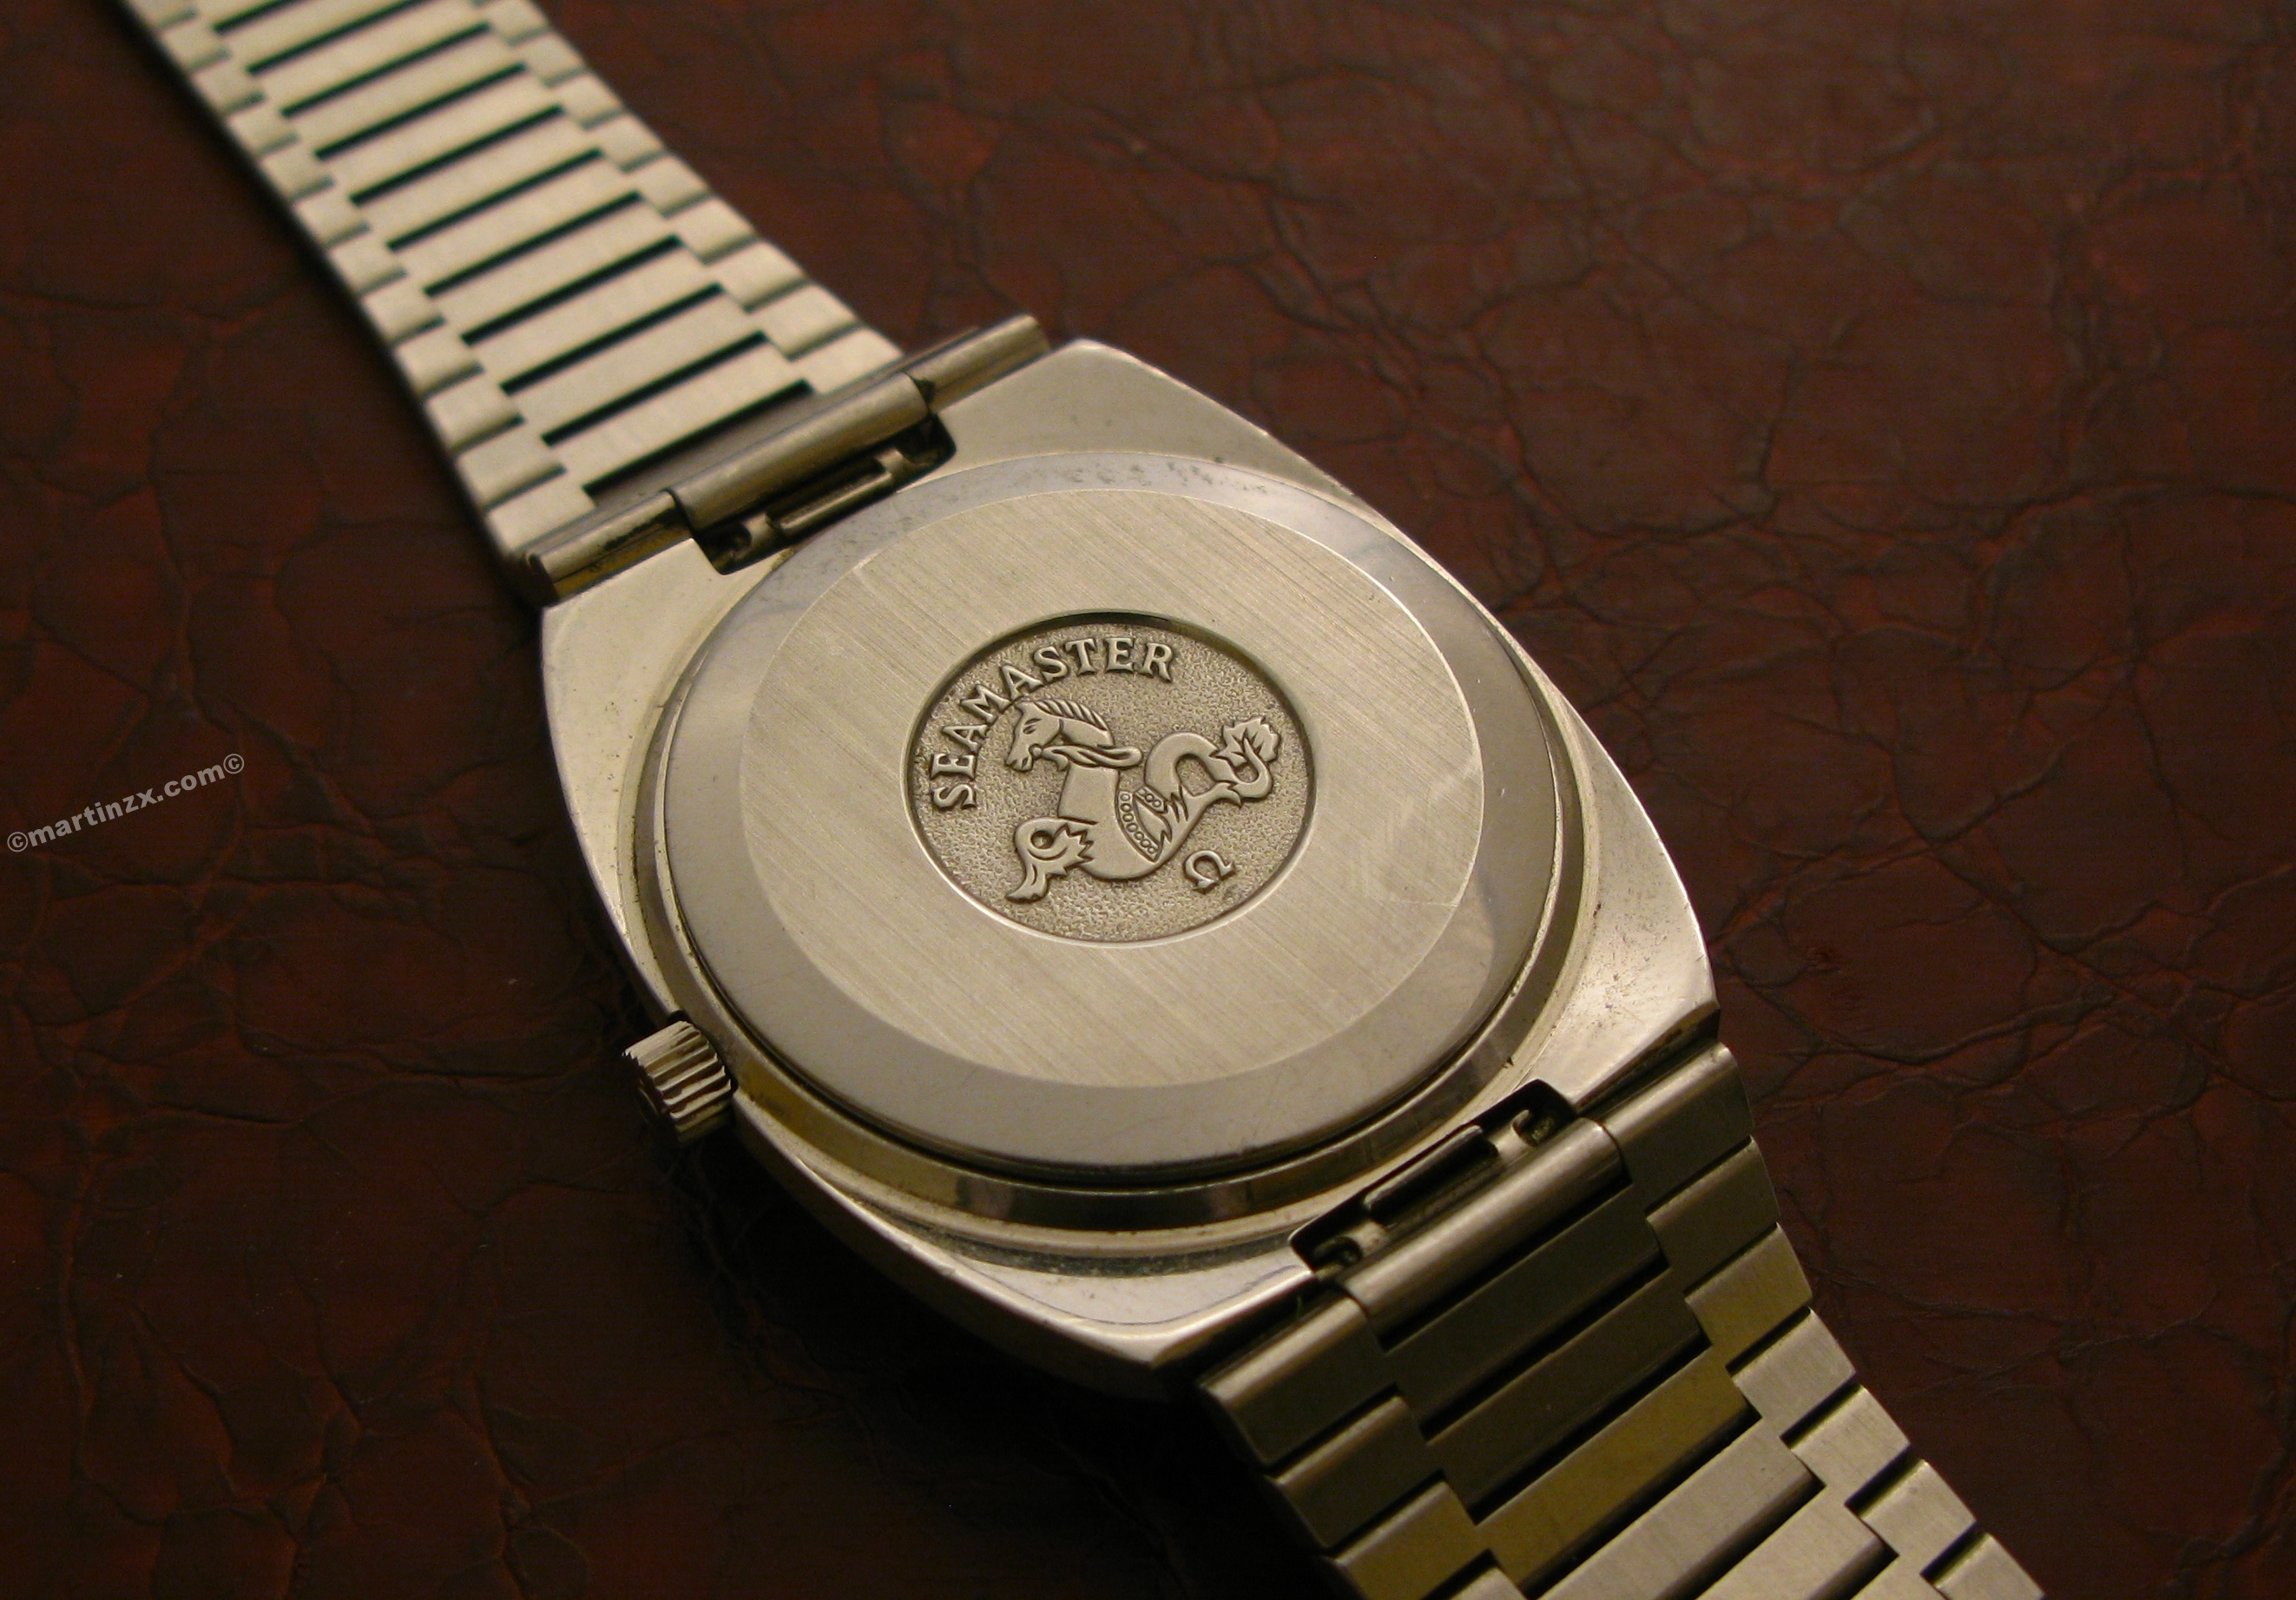 Omega Seamaster ST366 048 - Vintage Watches - The Watch Forum